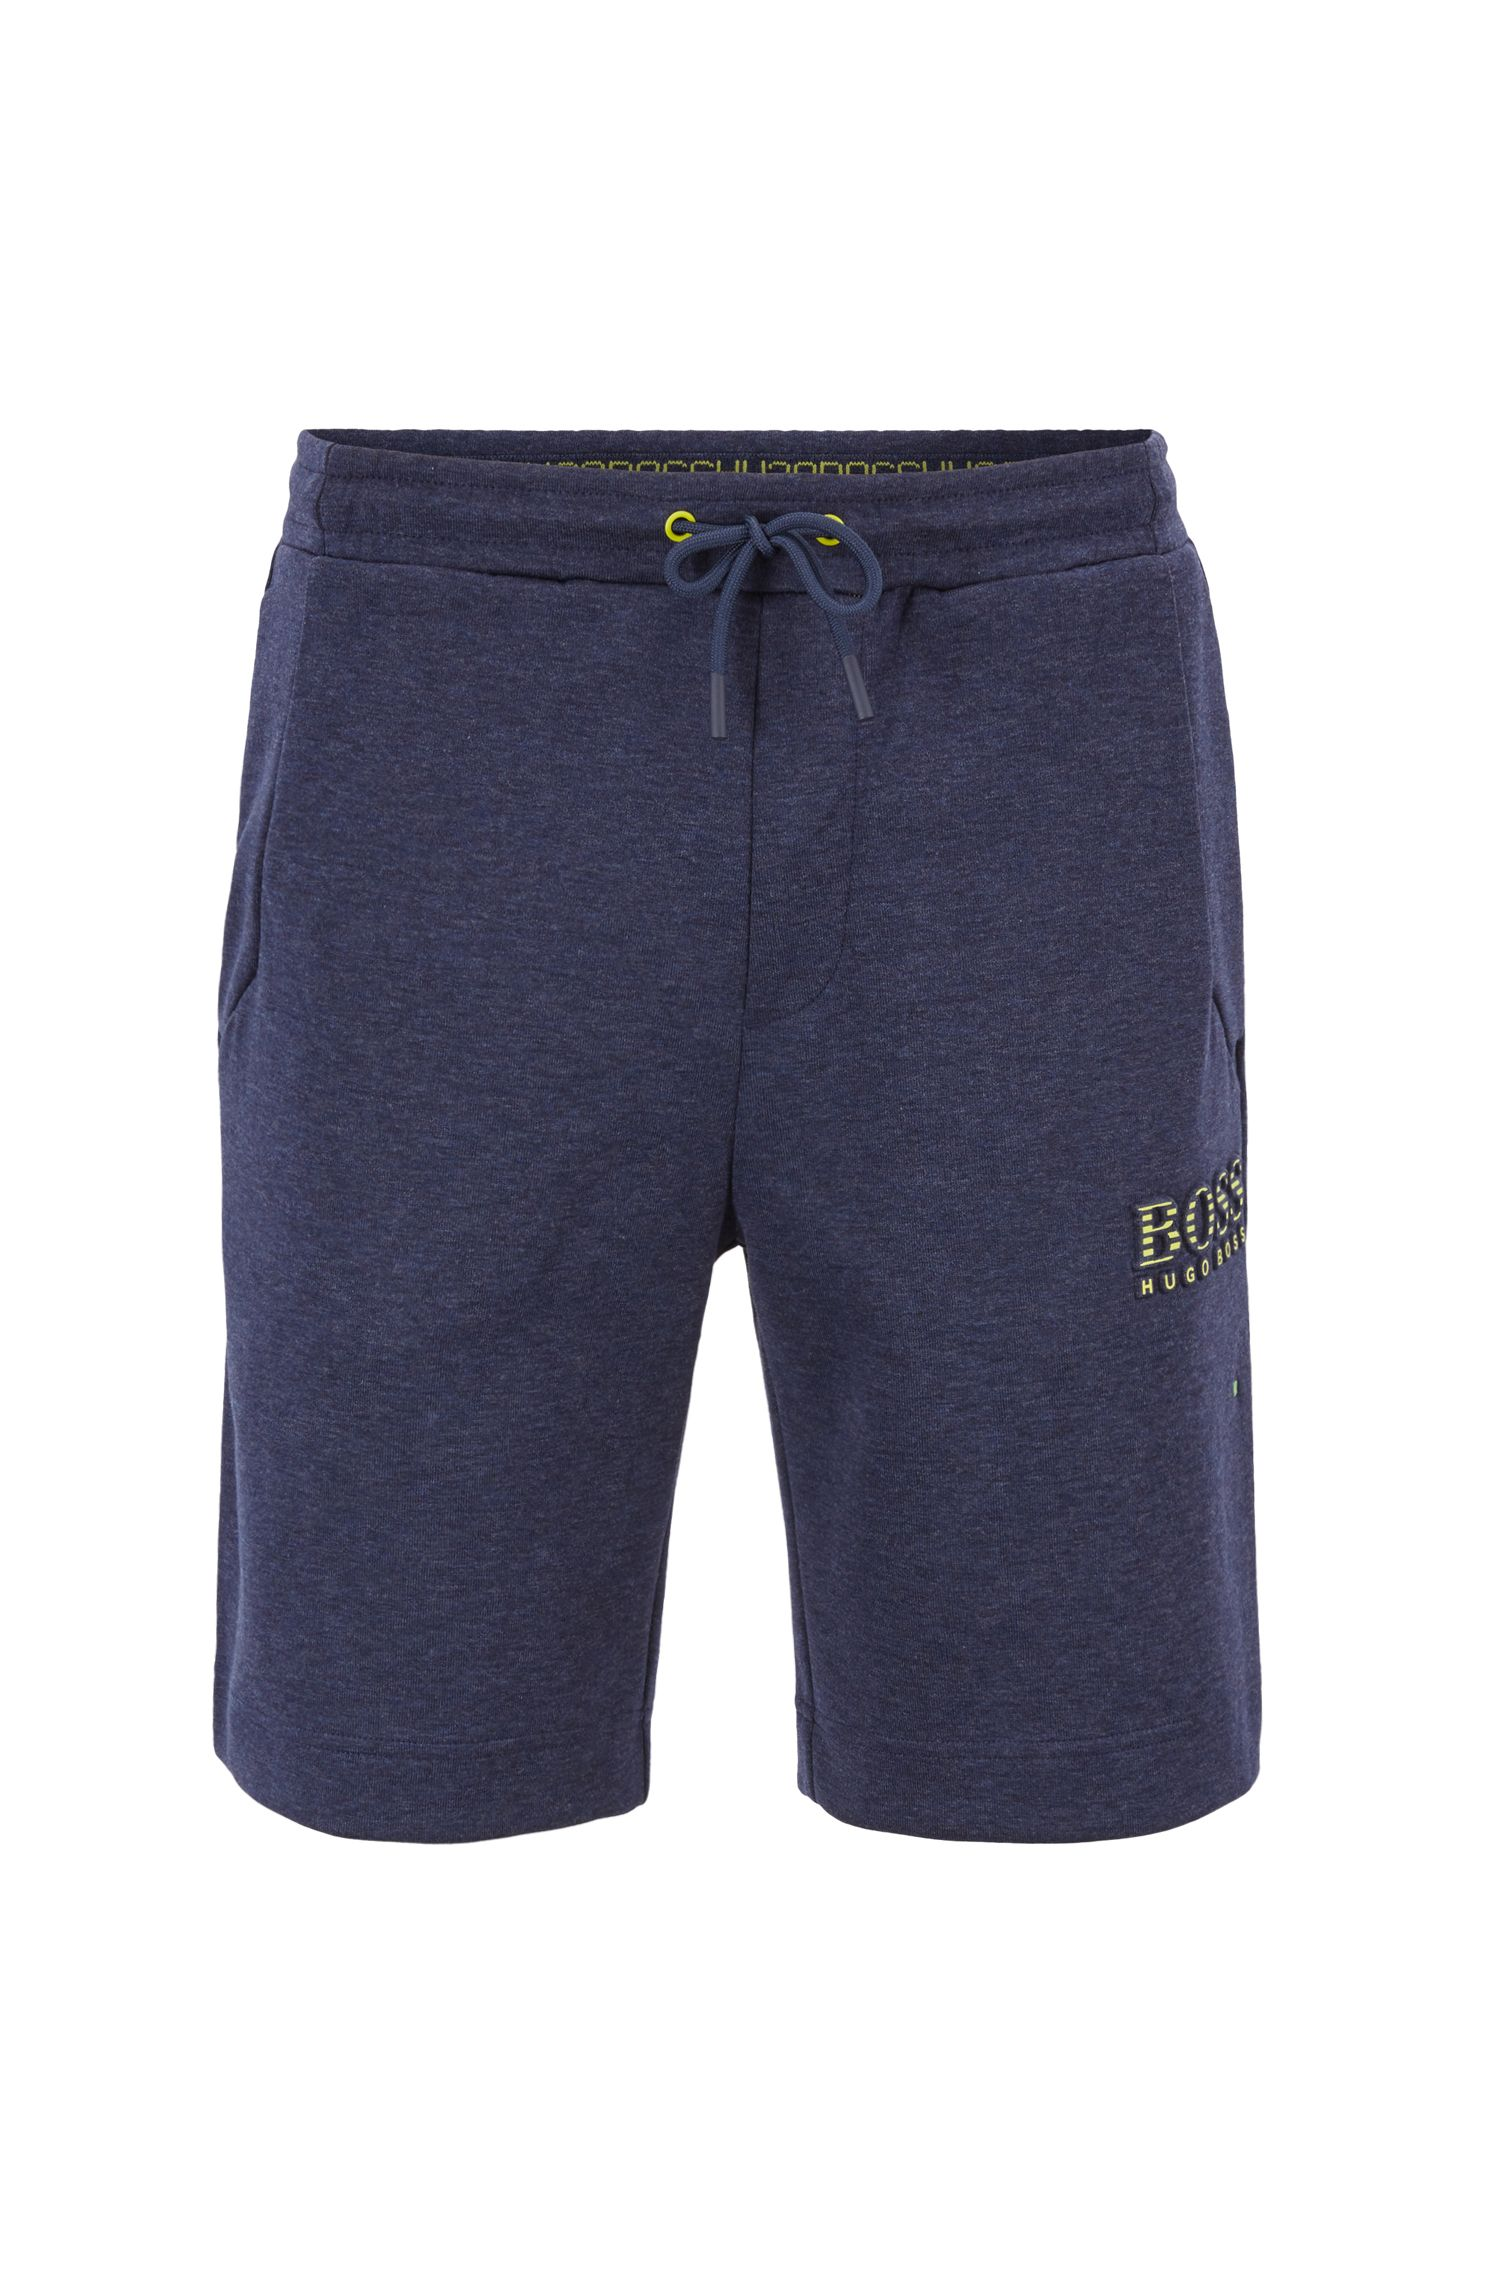 Cotton-blend shorts with reflective elements, Dark Blue